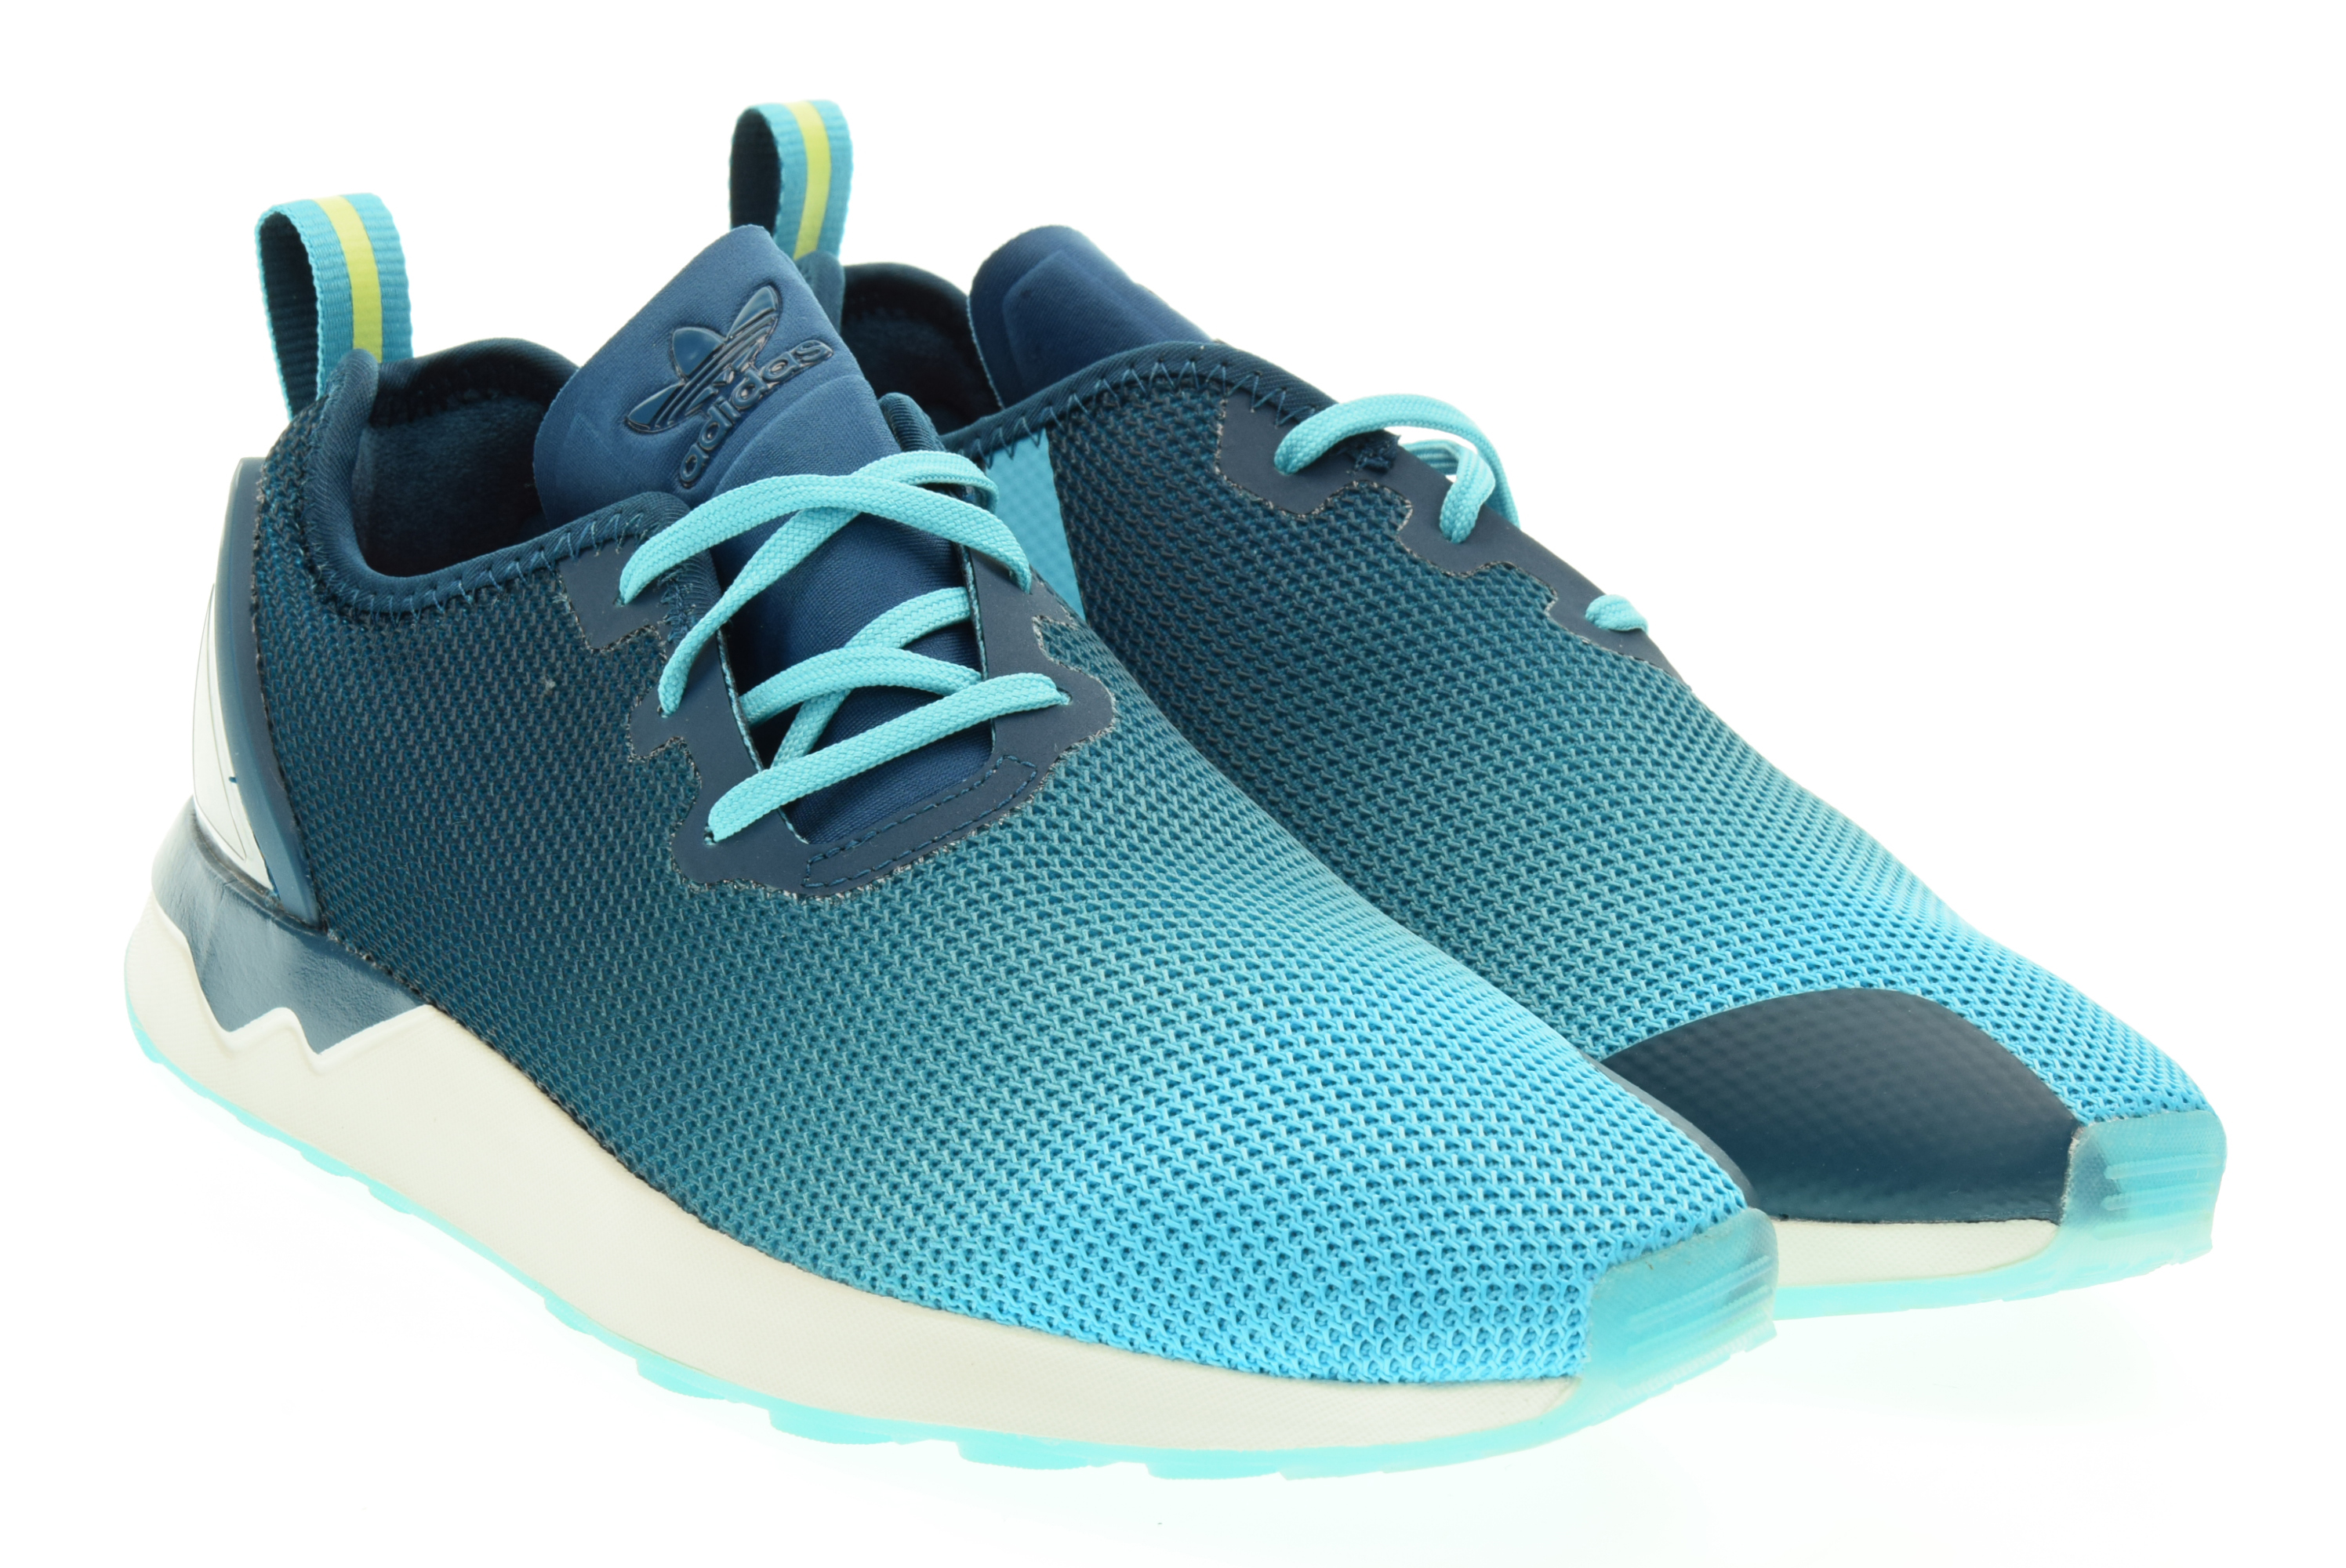 ADIDAS uomo sneakers basse S79056 ZX FLUX ADV ASYM P16